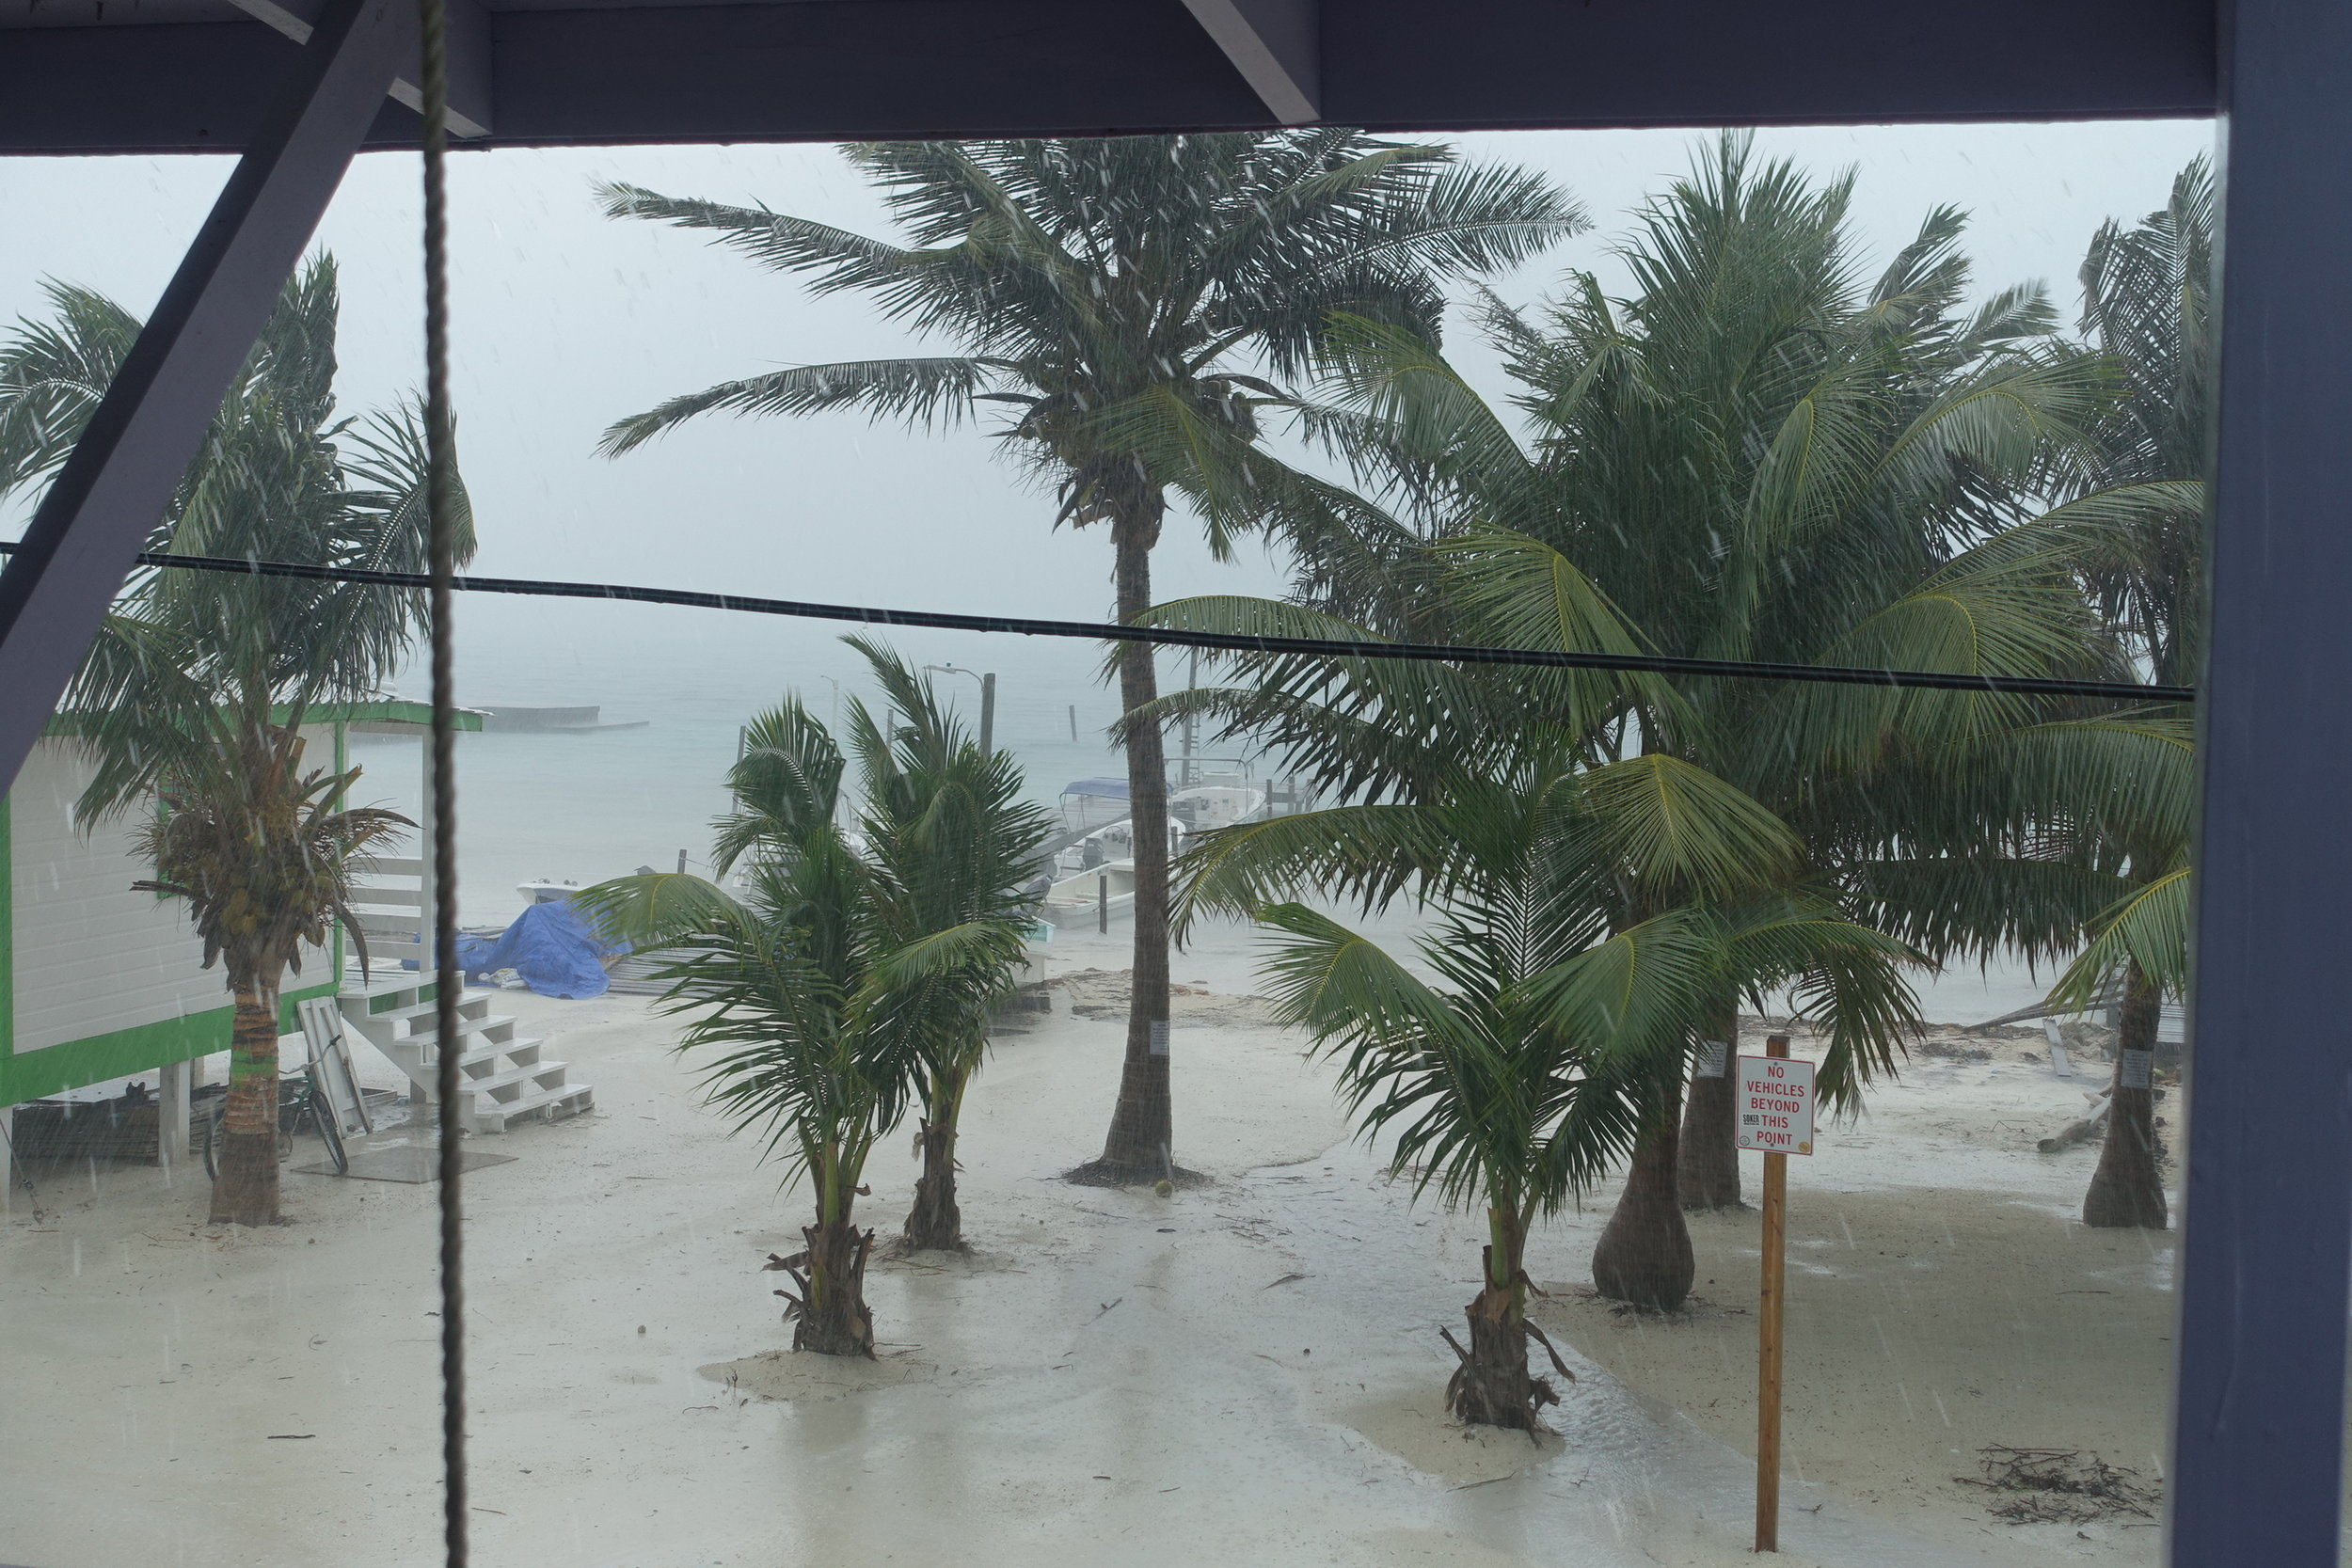 the weather was less than inviting on our snorkelling day